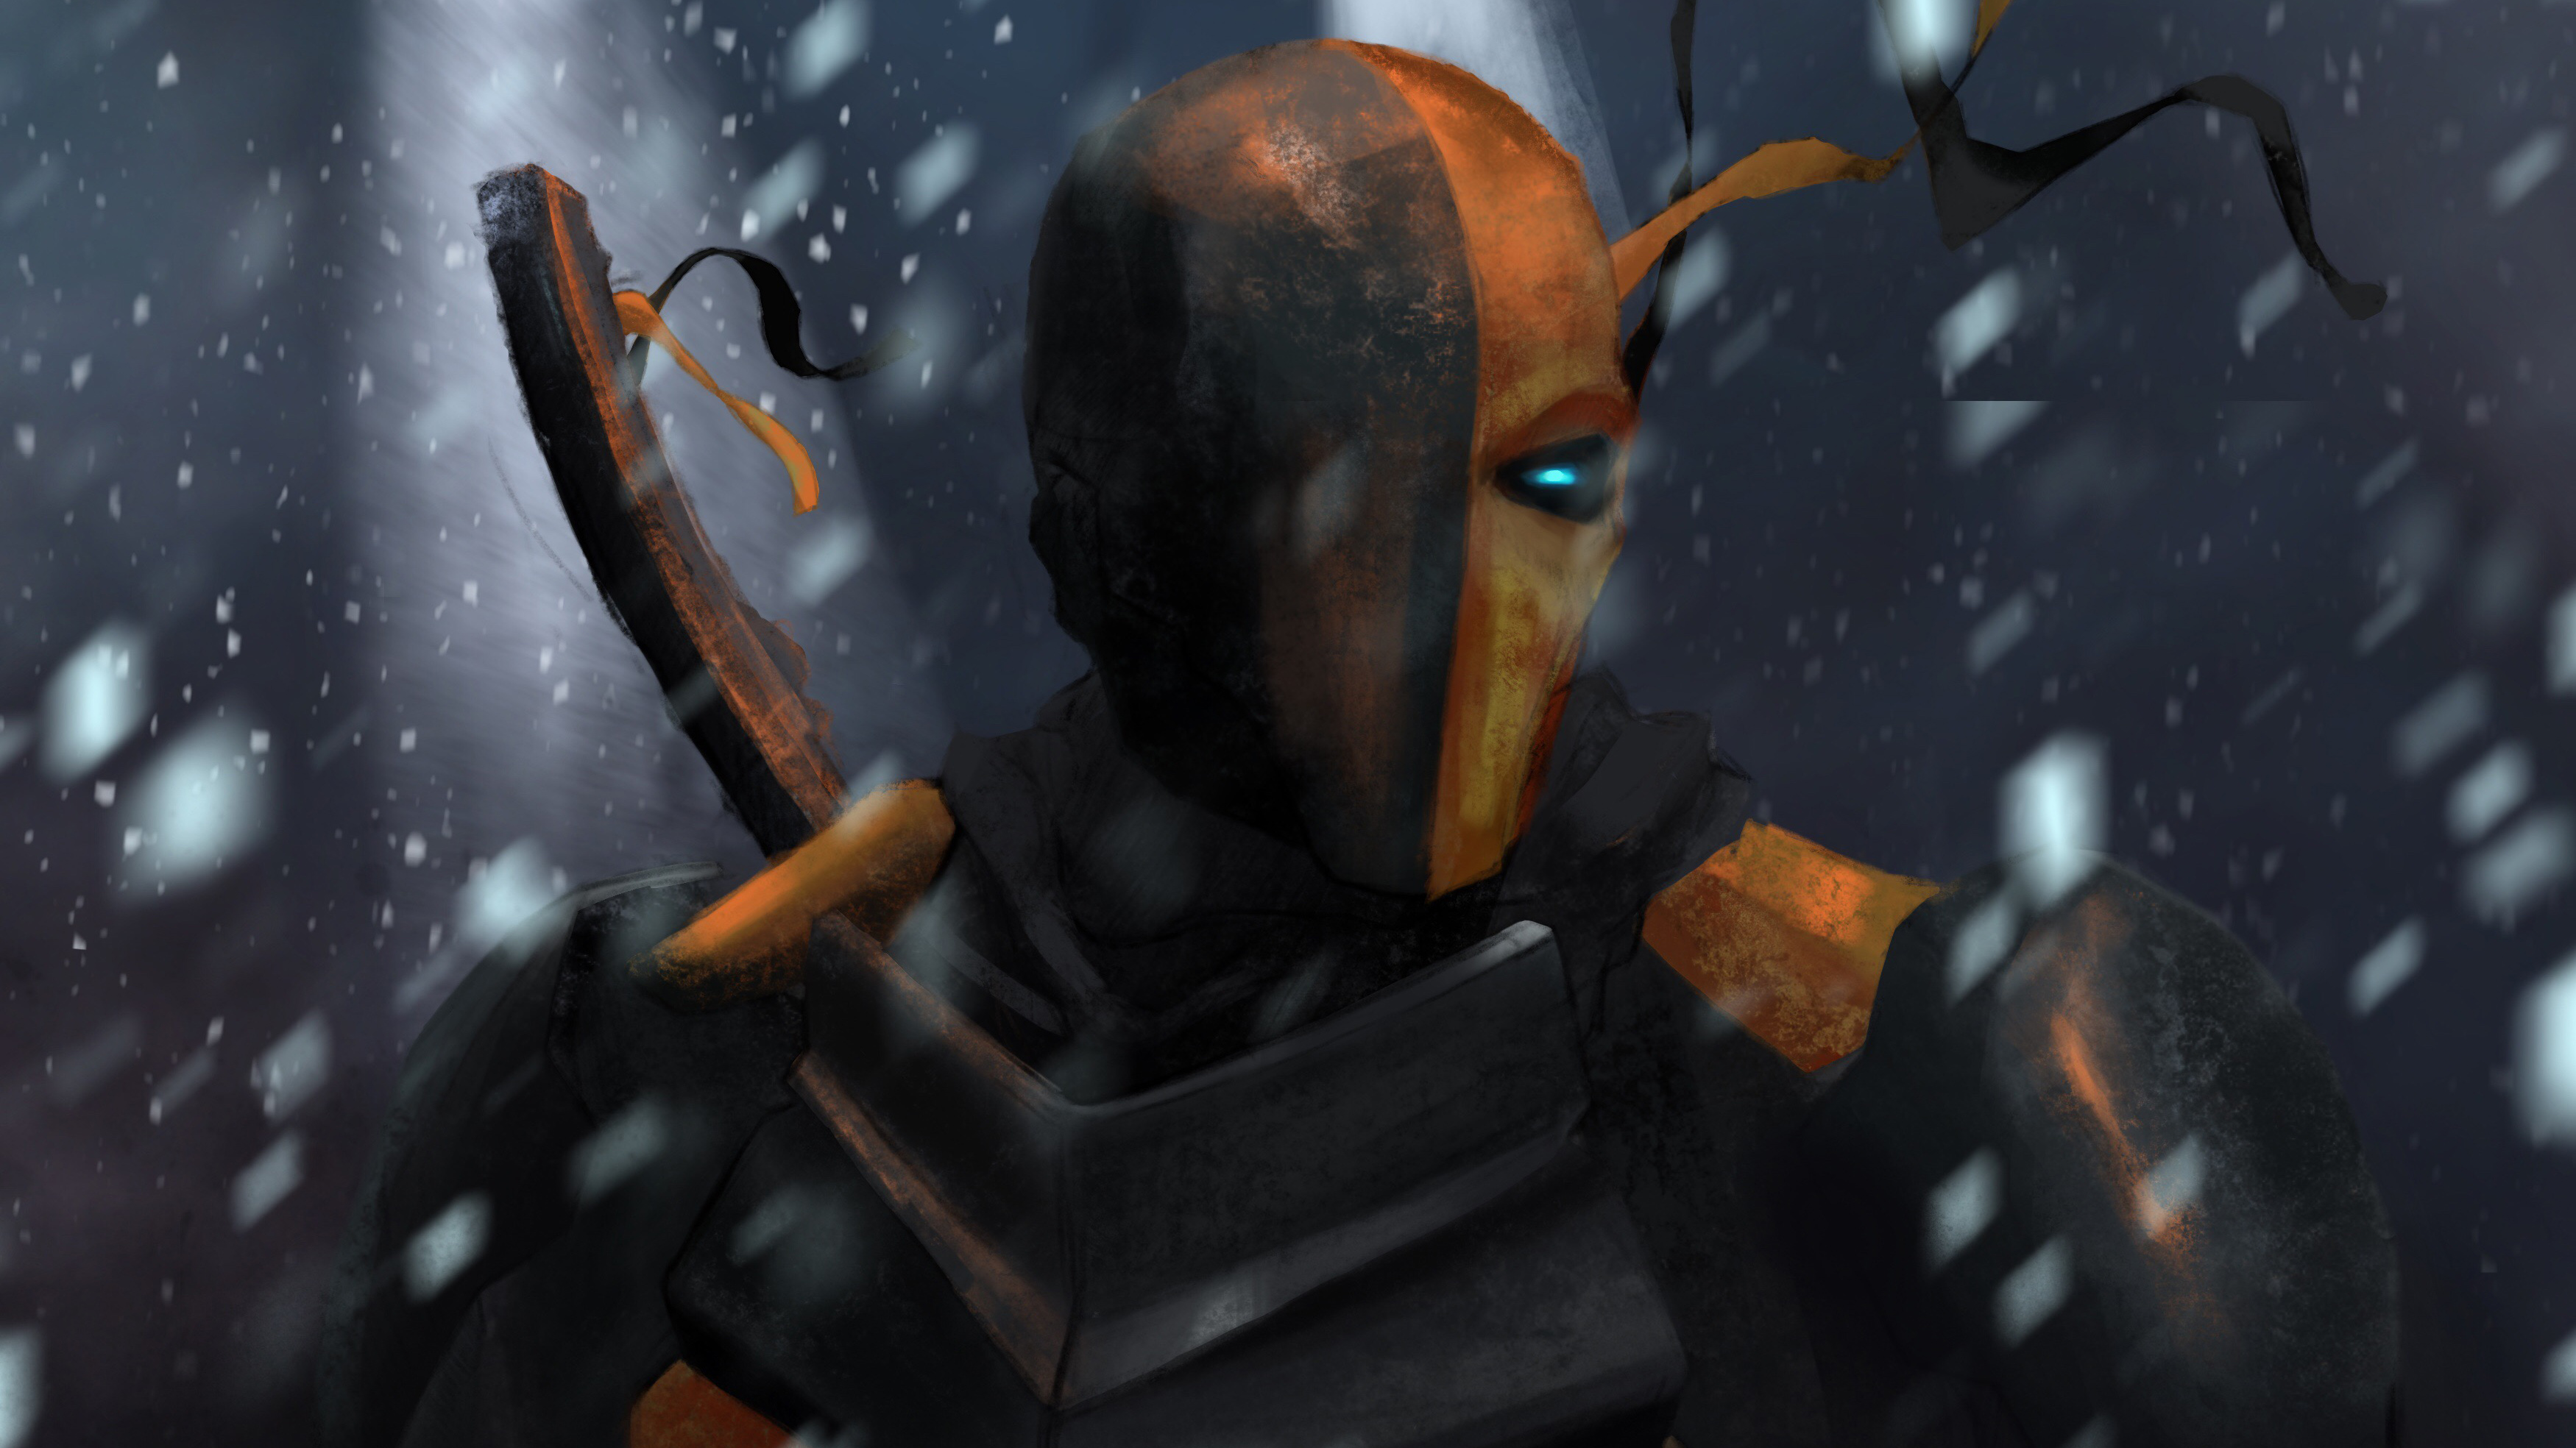 deathstroke 4k art 1548527195 - Deathstroke 4k Art - superheroes wallpapers, hd-wallpapers, digital art wallpapers, deathstroke wallpapers, dc comics wallpapers, artwork wallpapers, artist wallpapers, 4k-wallpapers